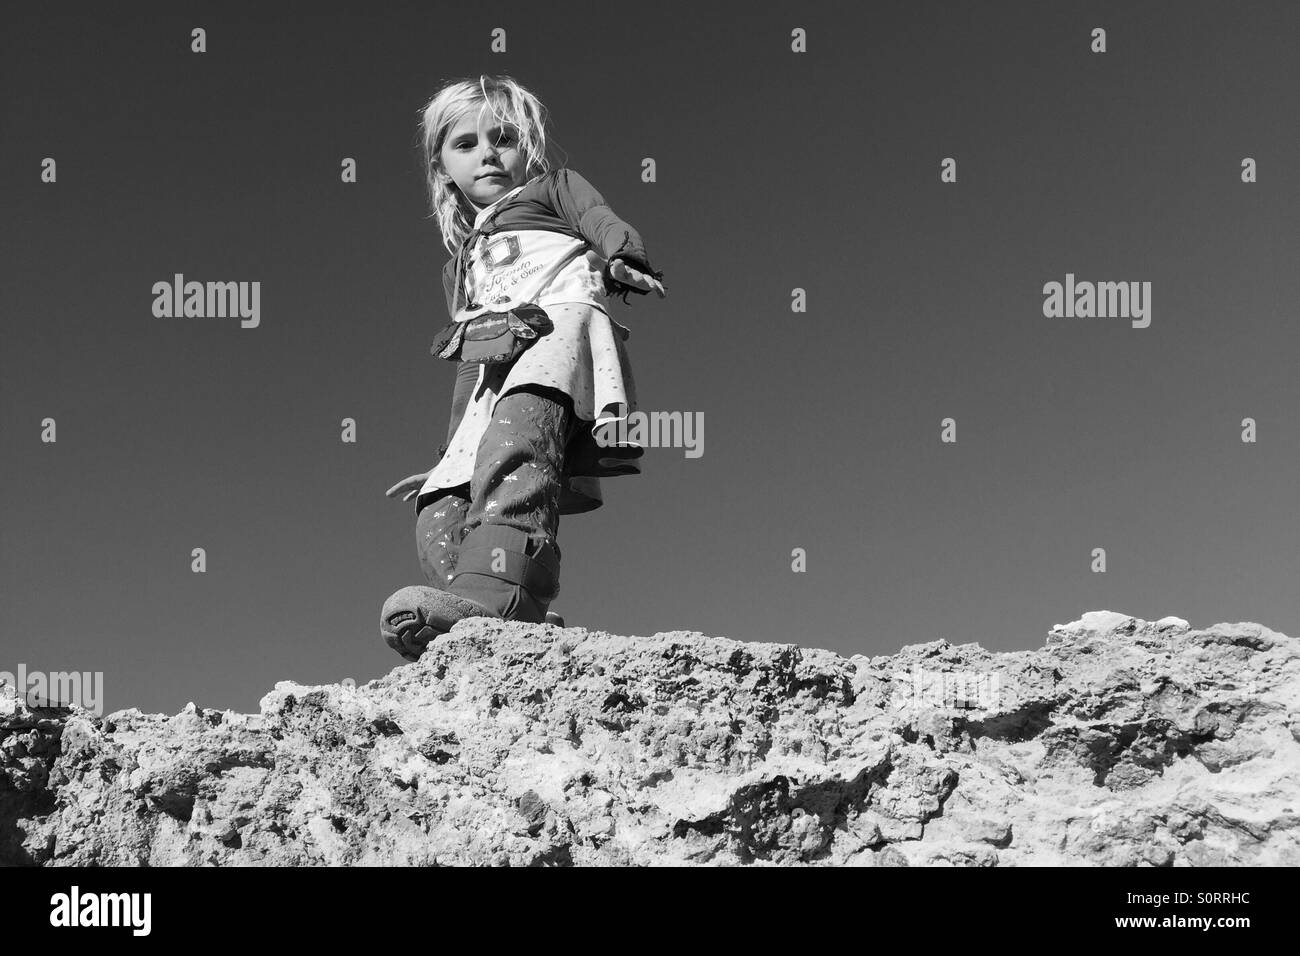 Girl getting ready to jump - Stock Image